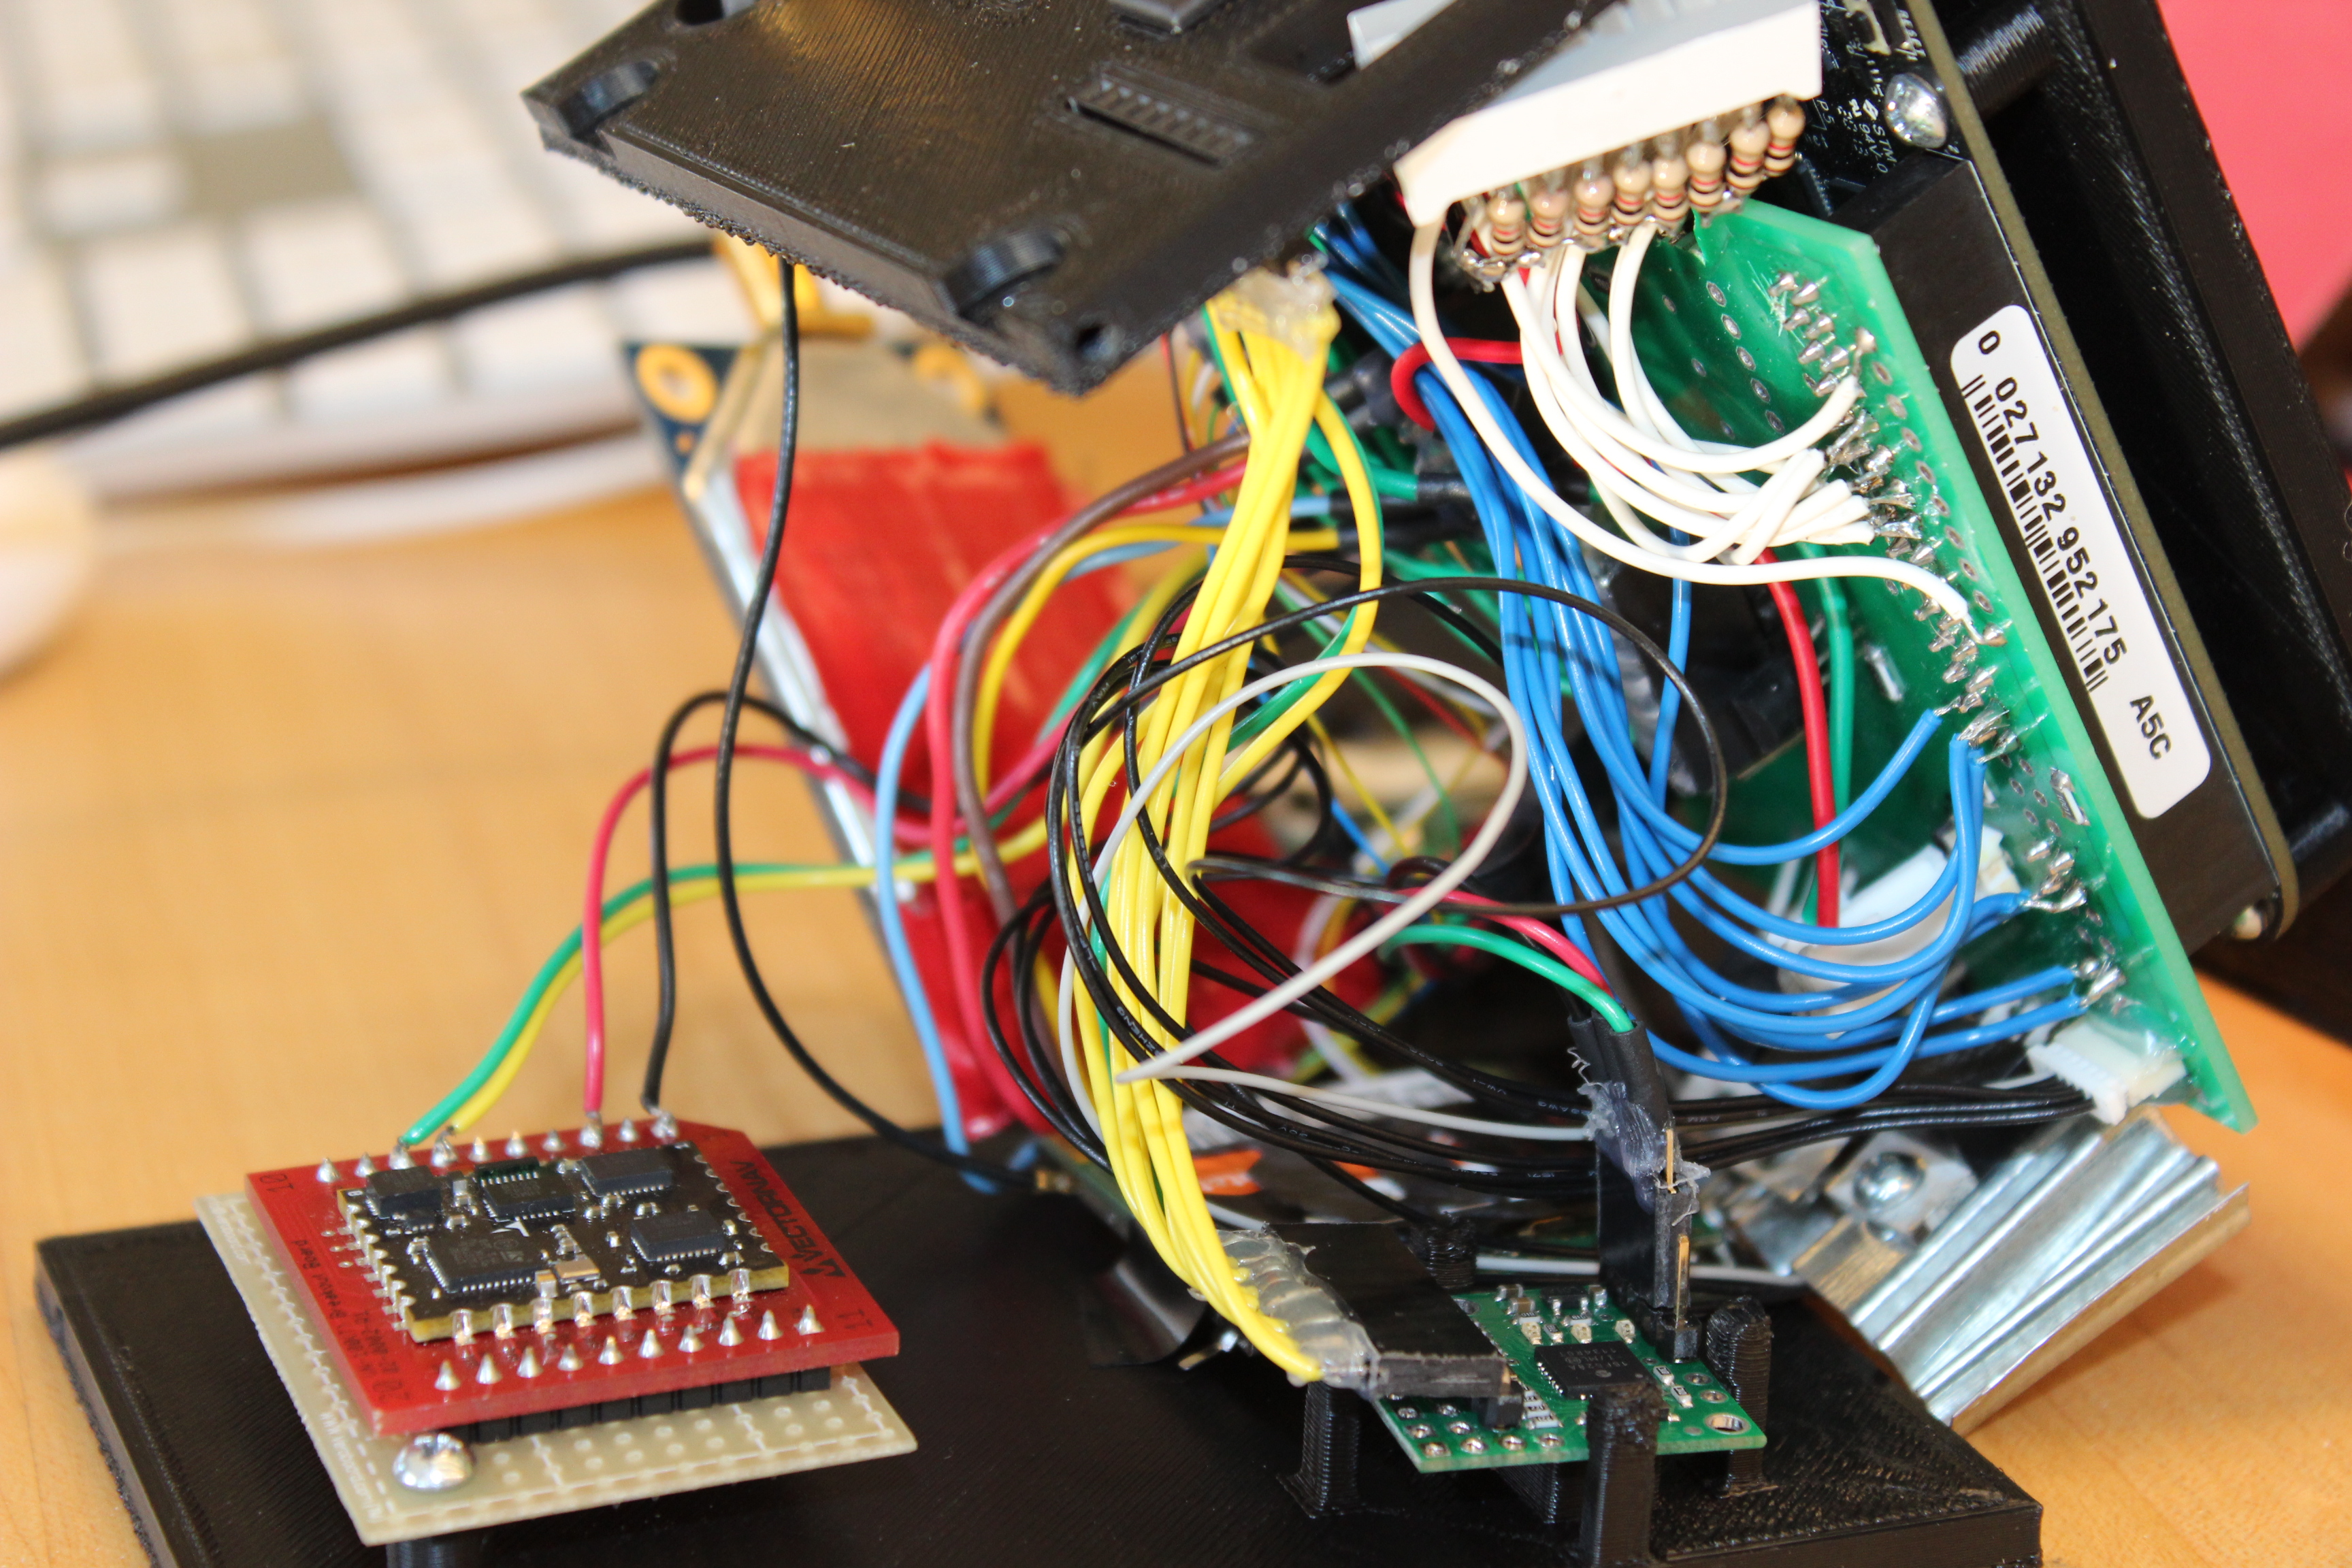 Command Center Yuaa Projects For Dummies Electronics Engineering Project Img 6502